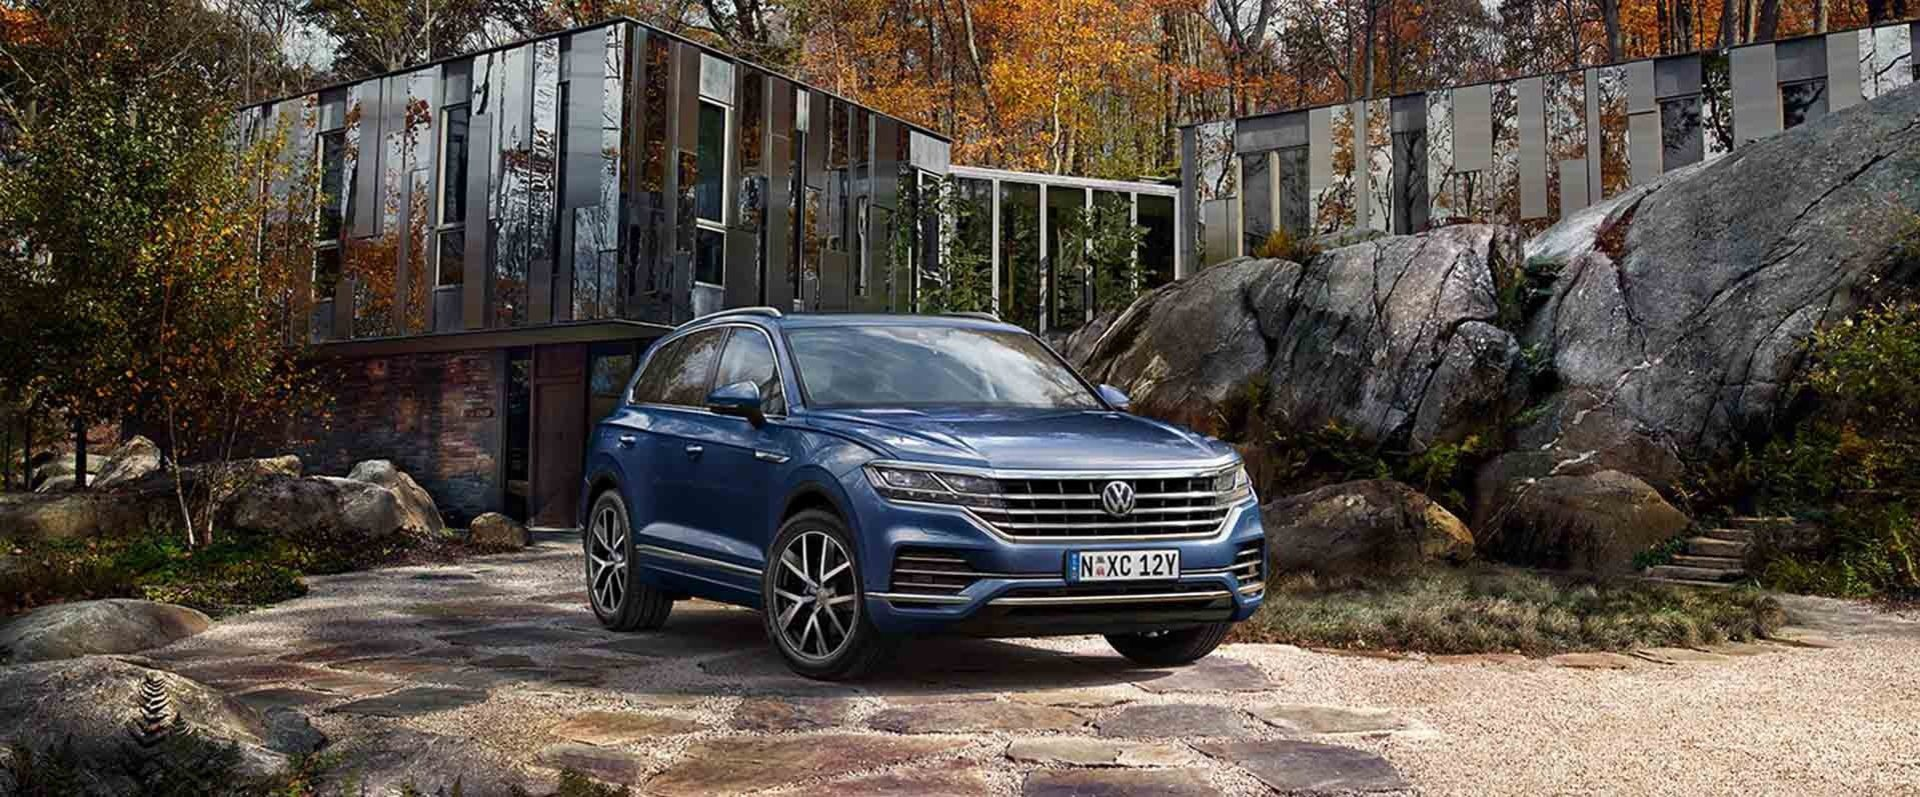 New Volkswagen Touareg available now at Beachside Volkswagen